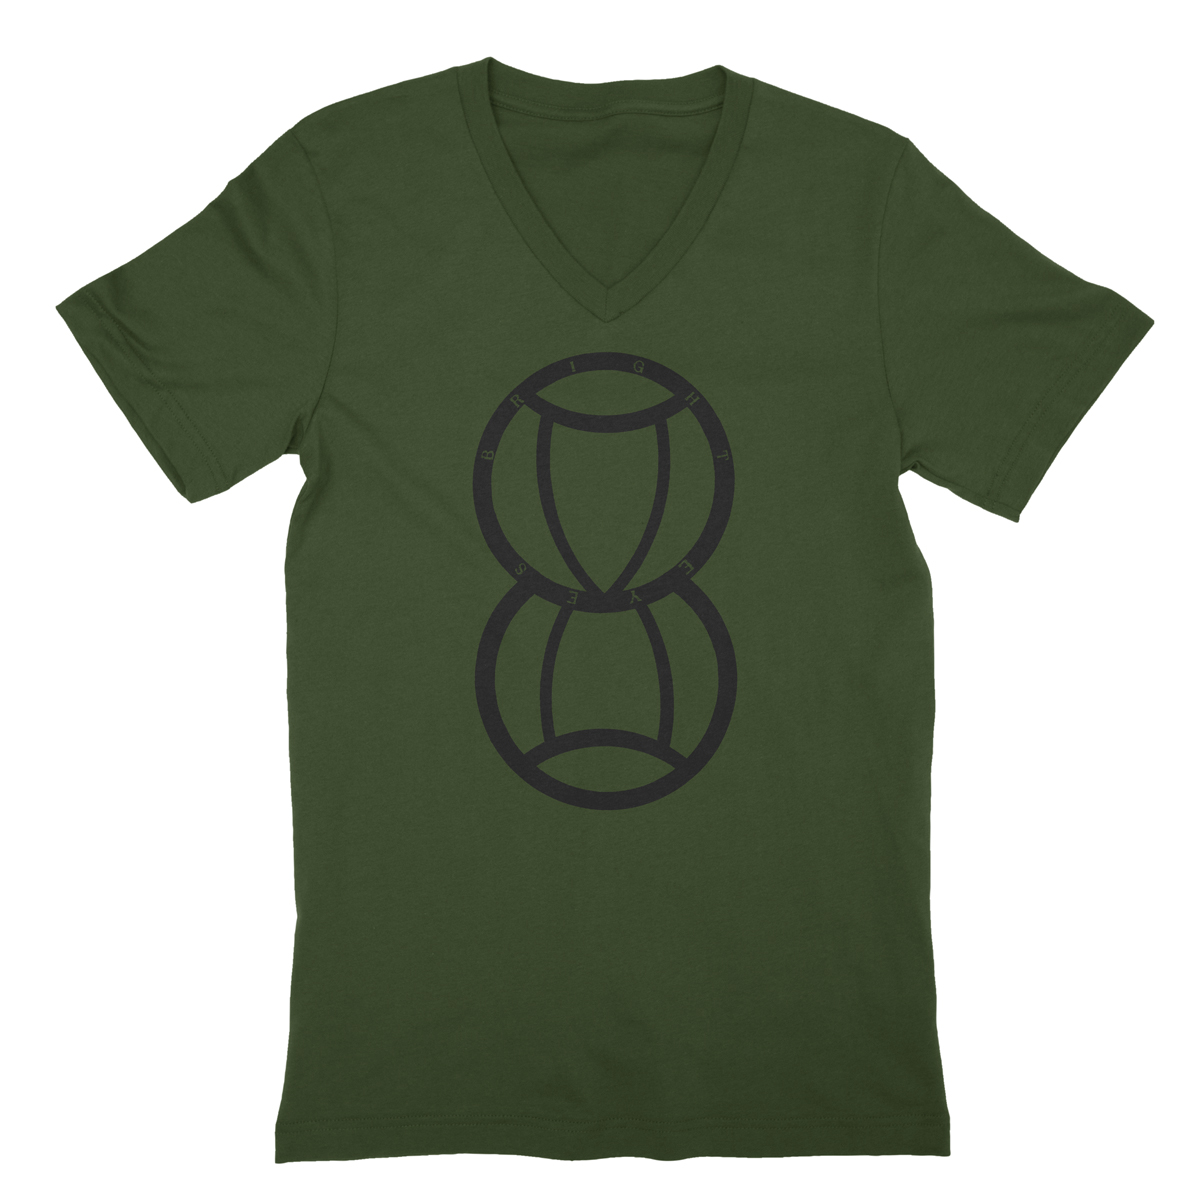 Hourglass Olive V-neck Tee - Conor Oberst